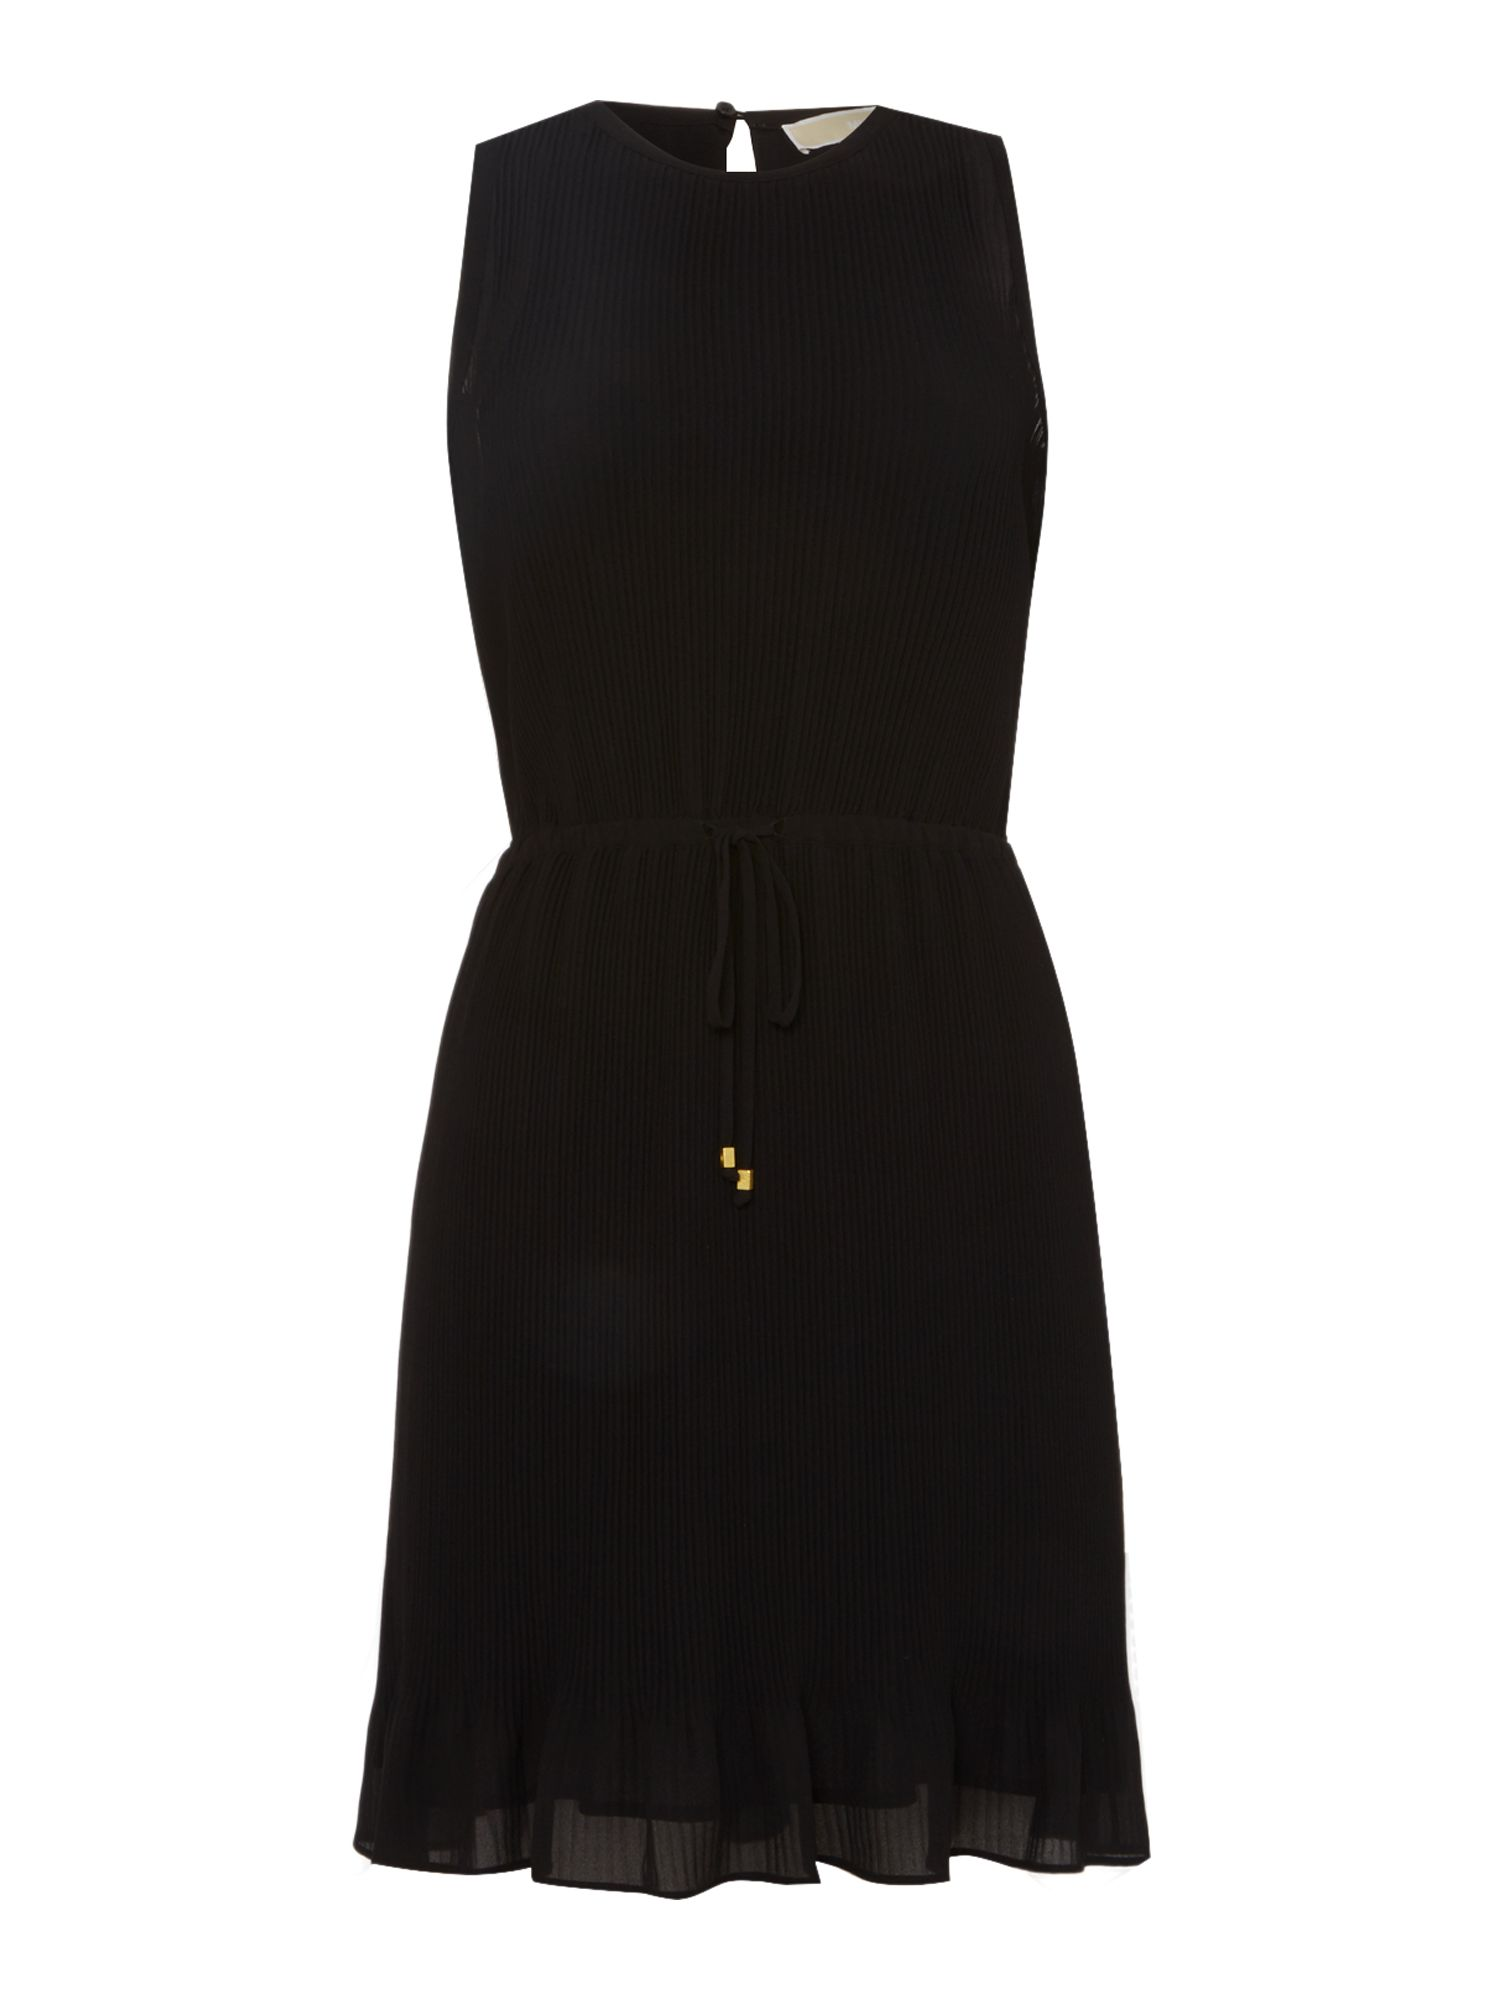 Michael Kors Sleeveless Pleated Dress, Black